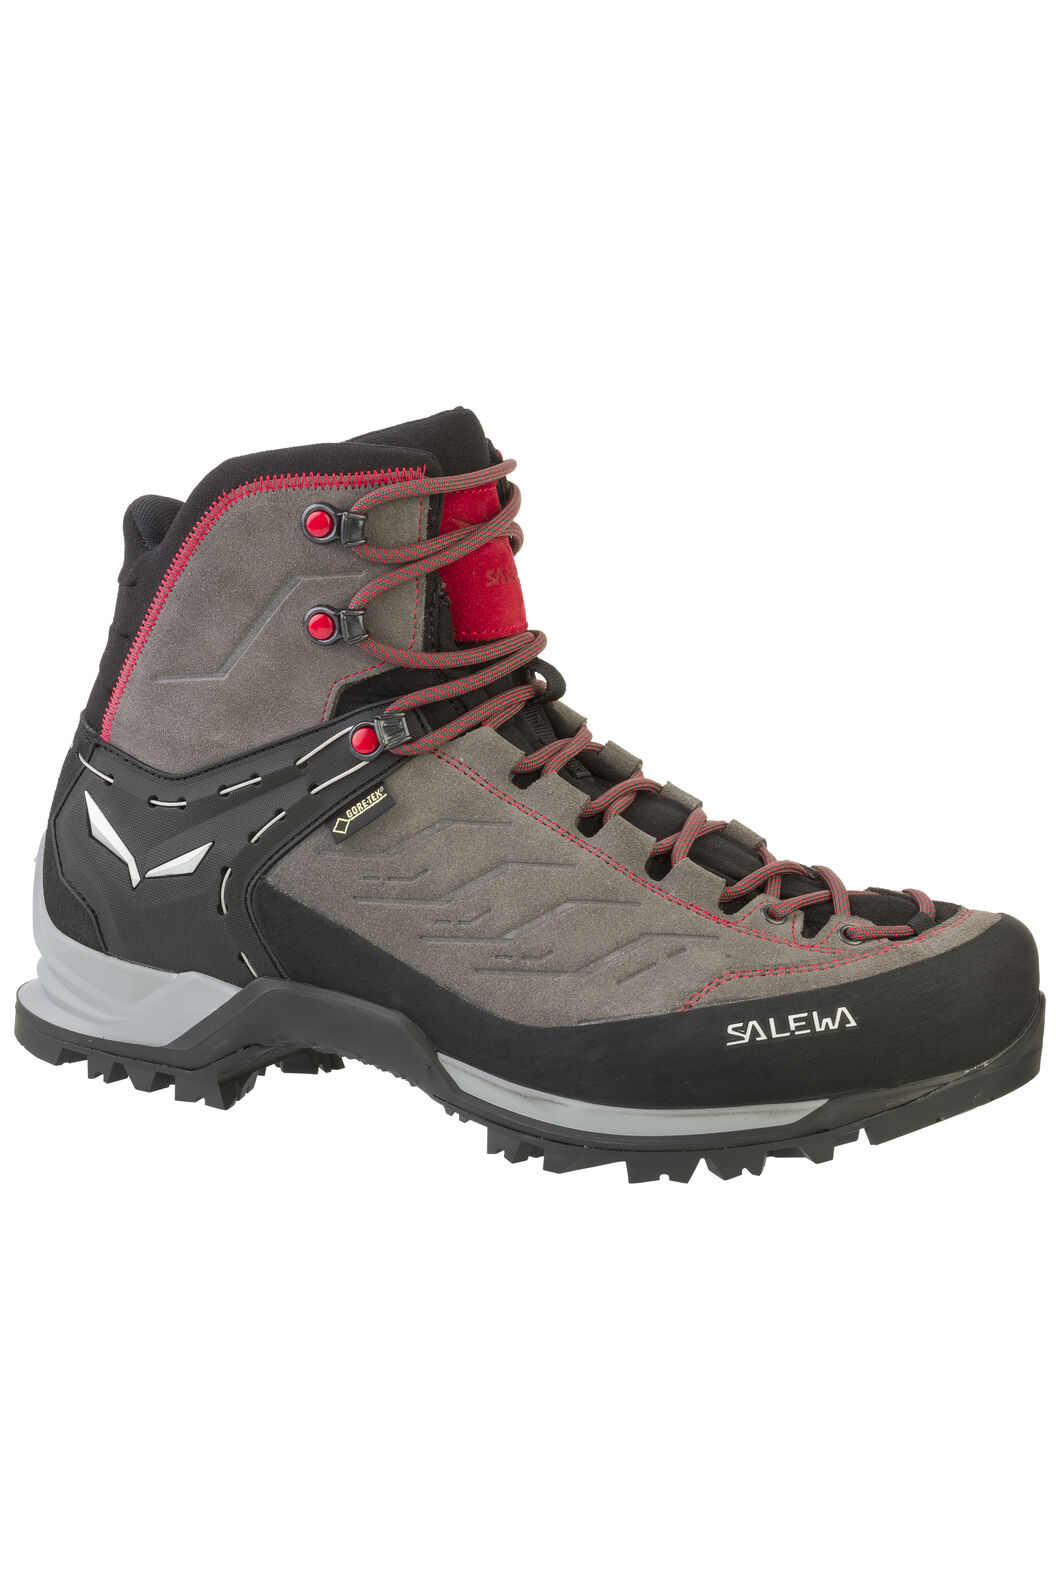 Salewa Mountain Trainer Mid GTX - Men's, Charcoal Papavero, hi-res